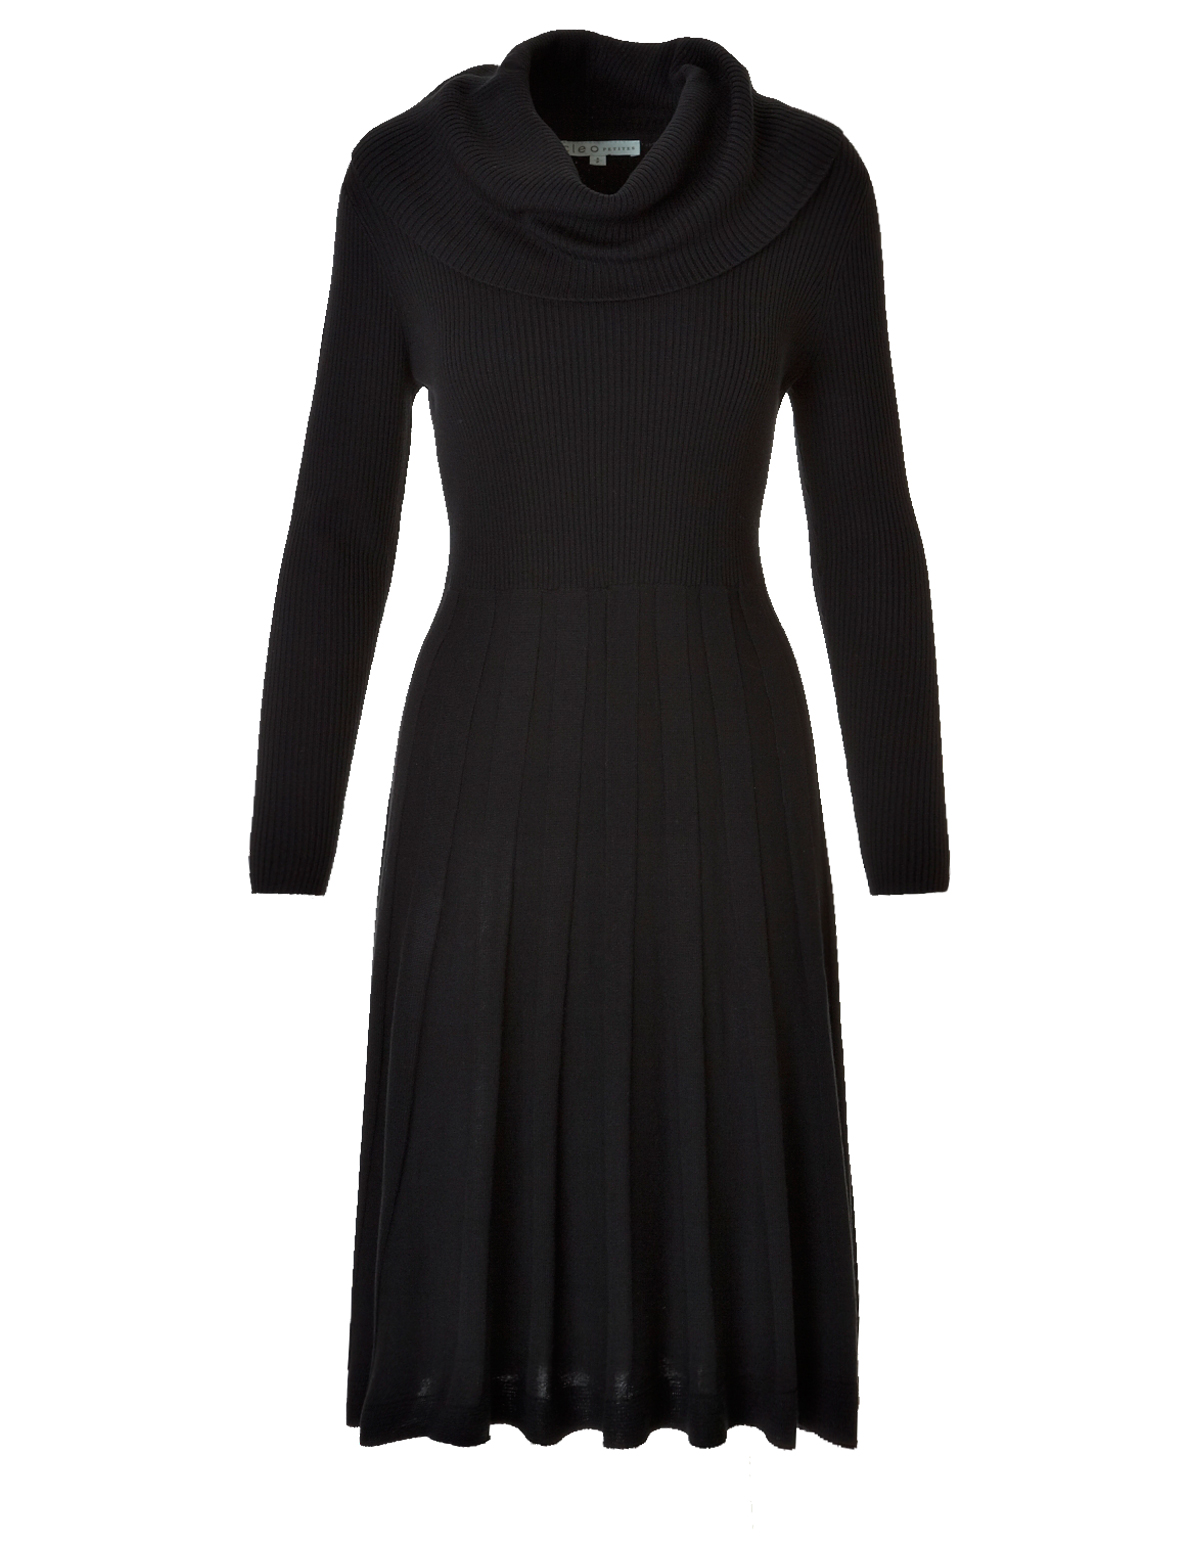 Find cowl neck women sweater dress at ShopStyle. Shop the latest collection of cowl neck women sweater dress from the most popular stores - all in one Top colors For cowl neck women sweater dress Black cowl neck women sweater dress Sandra Darren Women's 1 Pc Long Sleeve Printed Striped Cowl Neck Sweater Dress $–59 Get a Sale.